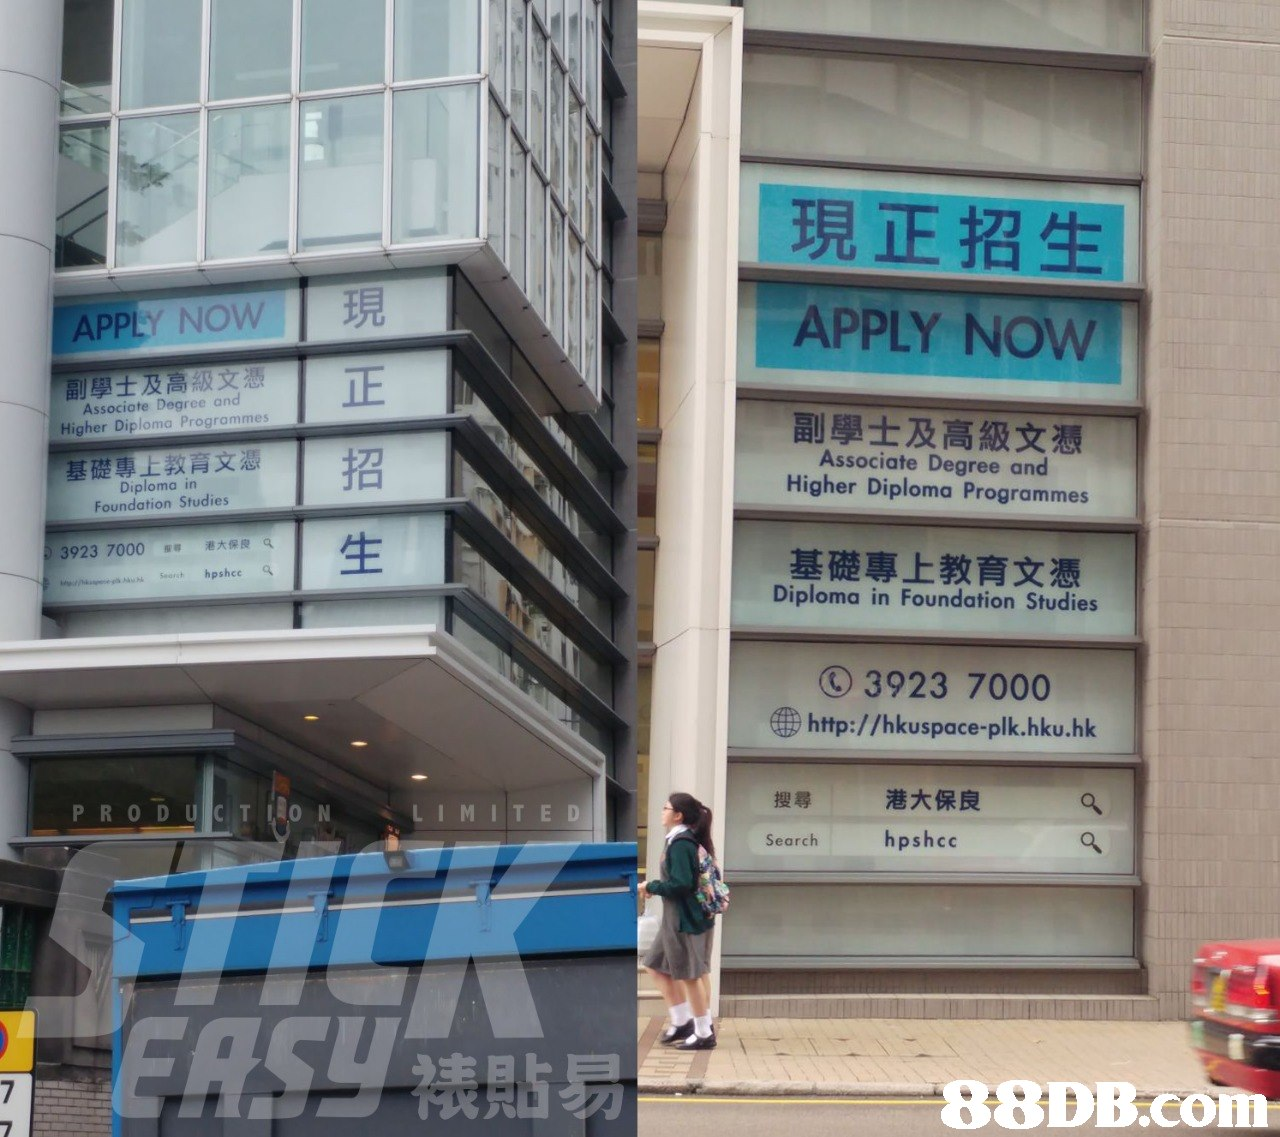 現 正招生11 APPLY NOW APPLY NOW 副學士及高級文憑 Associate Degree and Higher Diploma Programmes 1E 副學士及高級文憑 基礎專上教育文憑 Diploma in Foundation Studies Associate Degree and Higher Diploma Programmes 生 基礎專上教育文憑 Diploma in Foundation Studies 3923 7000 騲 港大保良 ⓒ 3923 7000 ㊧ http://hkuspace-plk.hku.hk 搜尋 港大保良 Searchhpshcc LIMITED 貼易   Building,Commercial building,Signage,